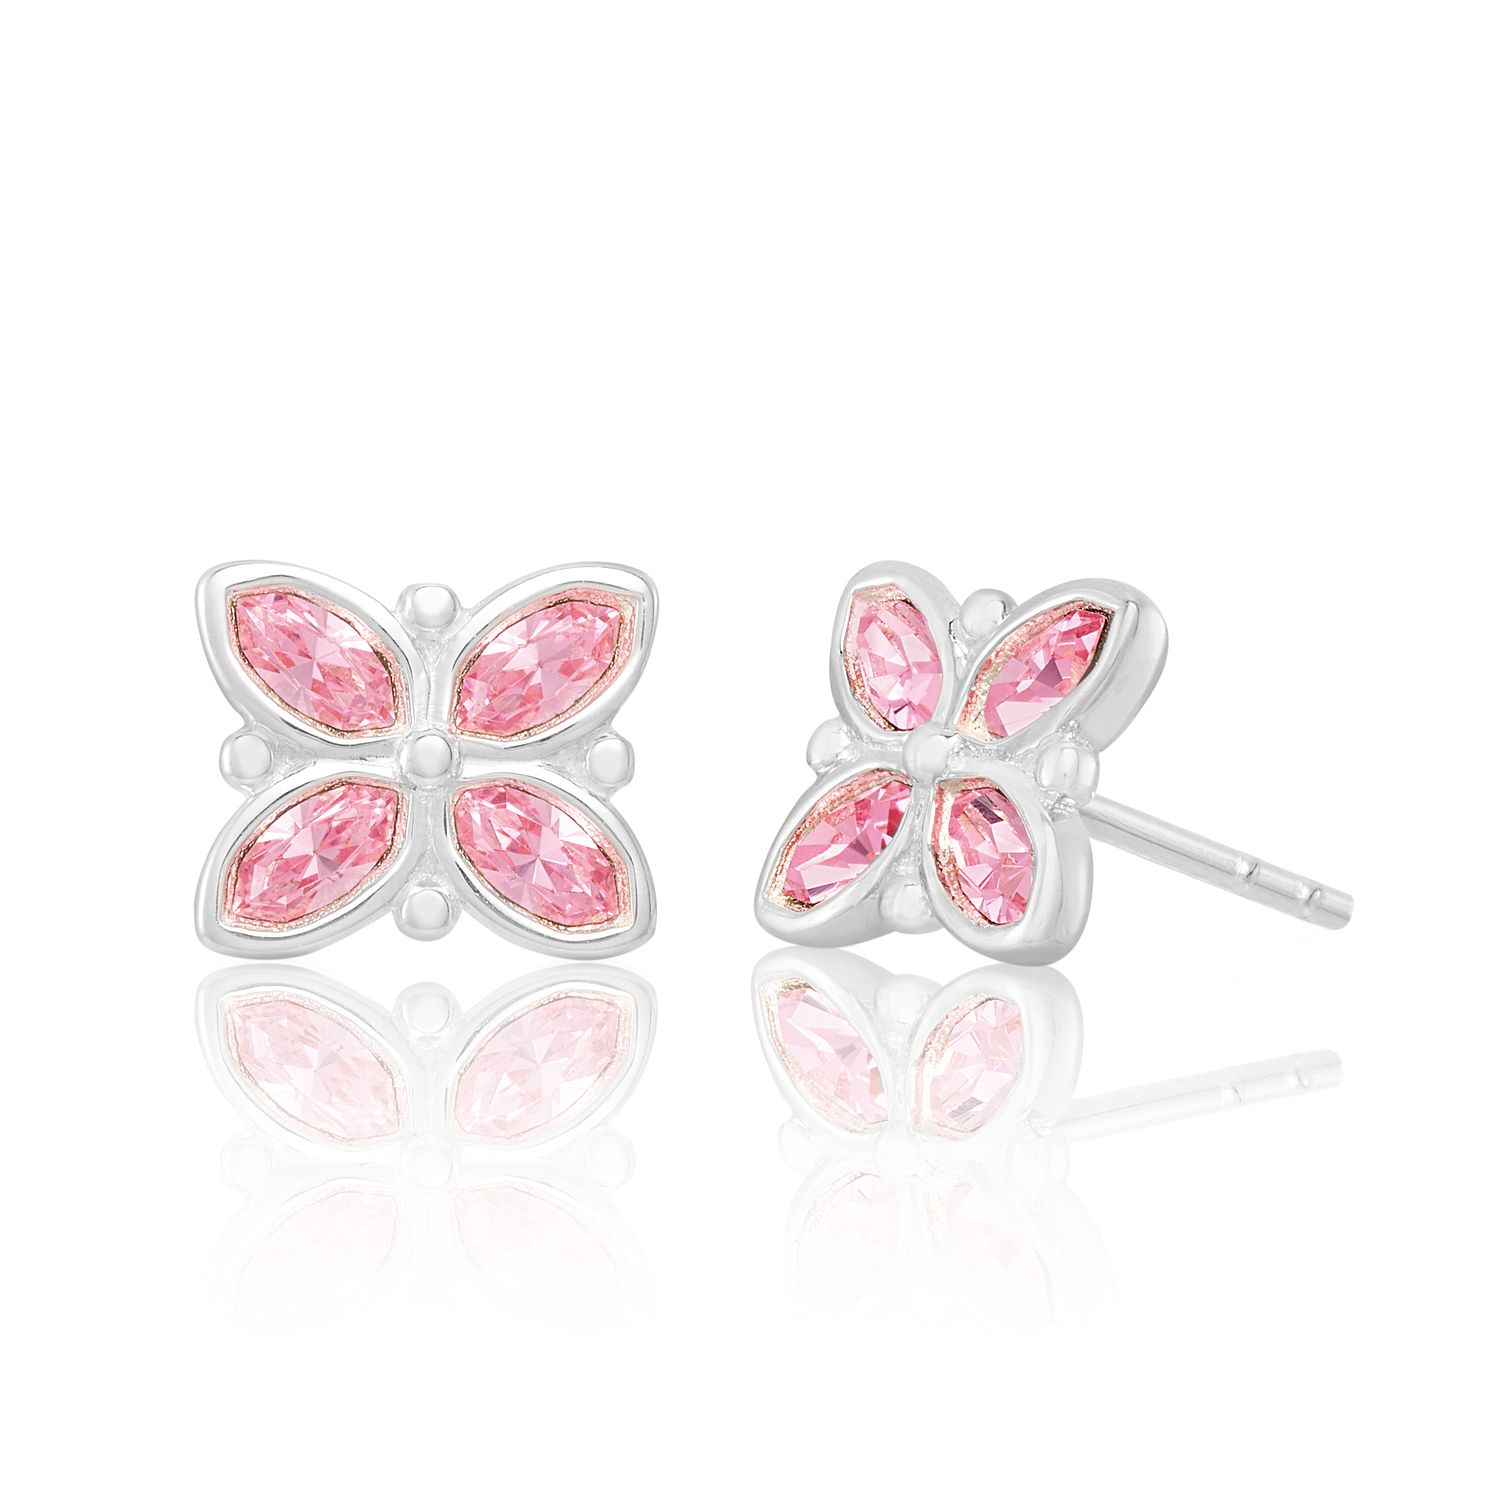 Chamilia Stained Glass Stud Earrings with Swarovski Crystal - Product number 2221640